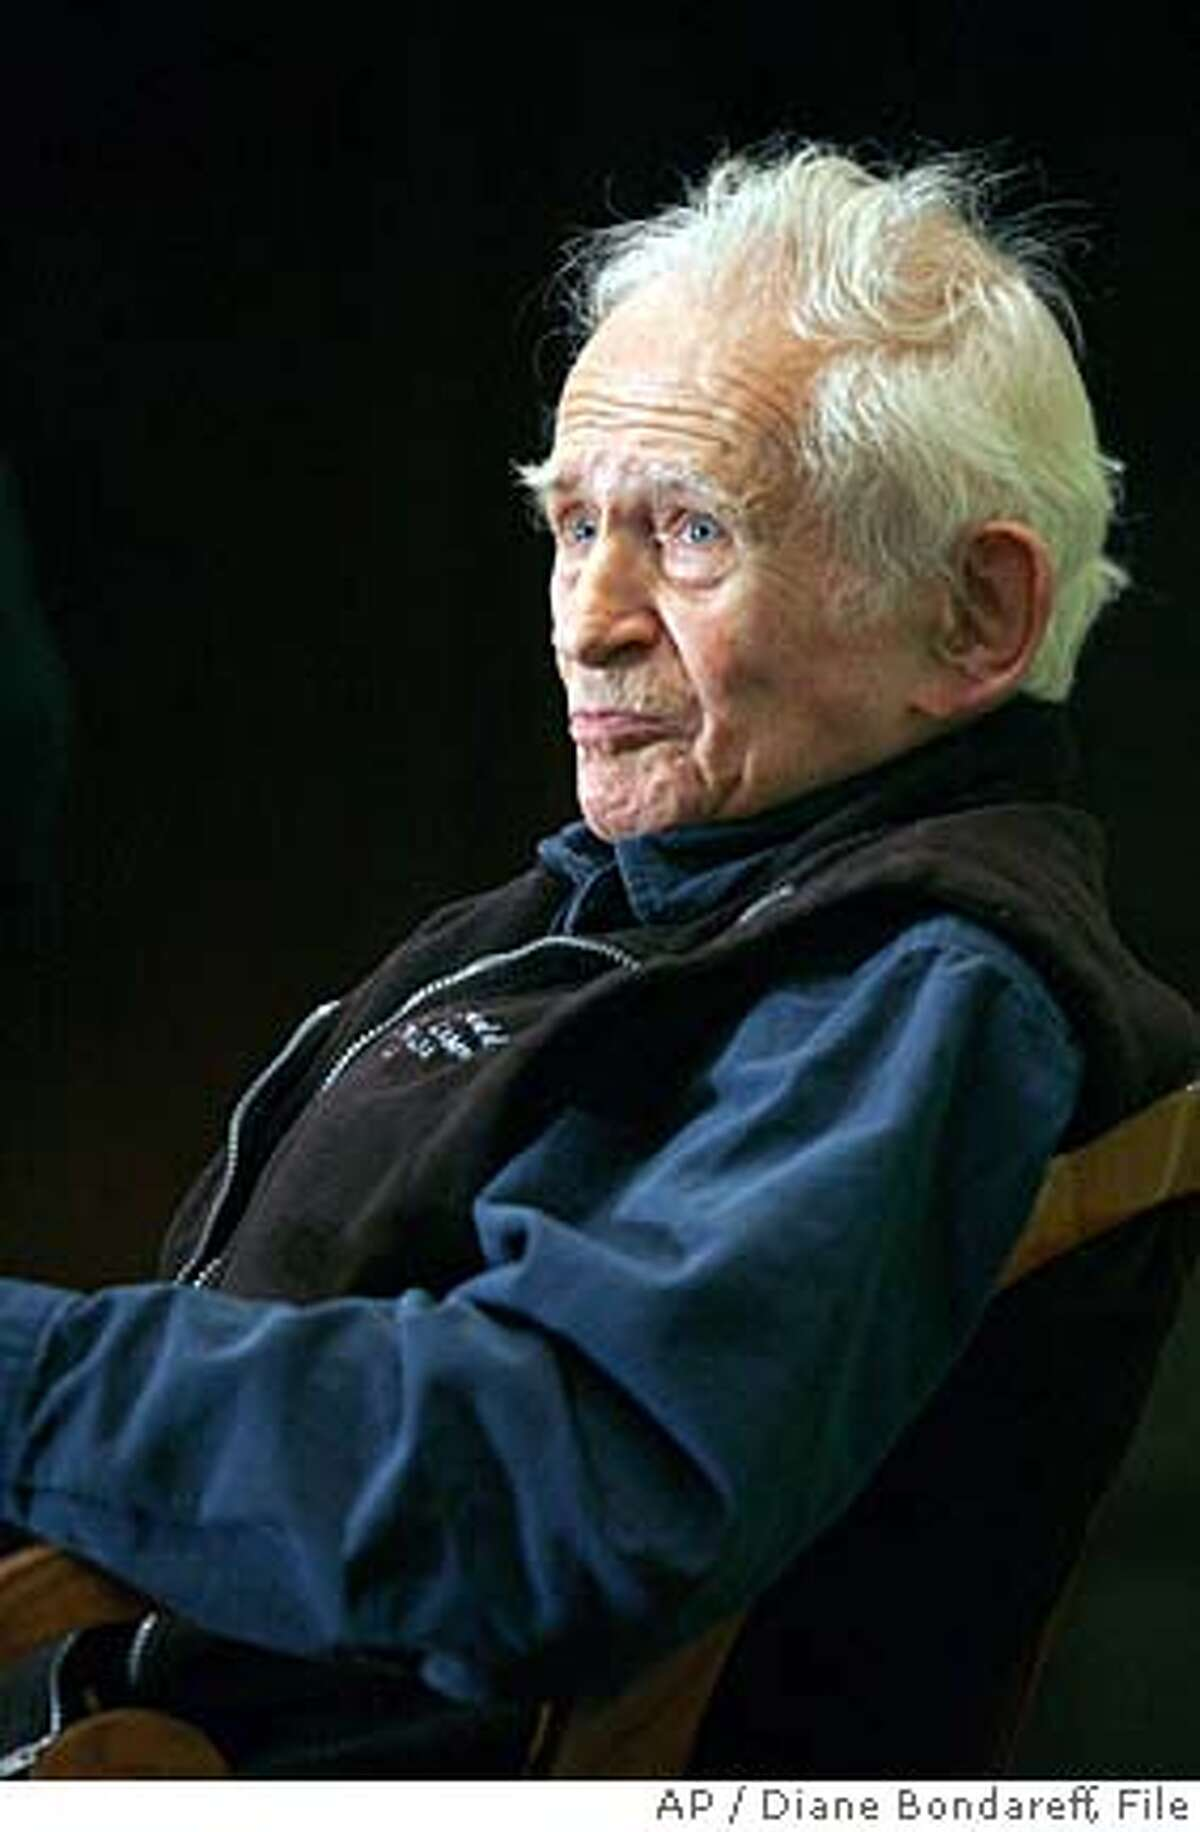 ** FILE ** Pulitzer Prize-winning author Norman Mailer attends a lecture entitled 'The 20th Century on Trial' at the New York Public Library, in this June 27, 2007 file photo, in New York. Mailer, the macho prince of American letters who for decades reigned as the country's literary conscience and provocateur, died of renal failure early Saturday, his literary executor said. He was 84. (AP Photo/Diane Bondareff)